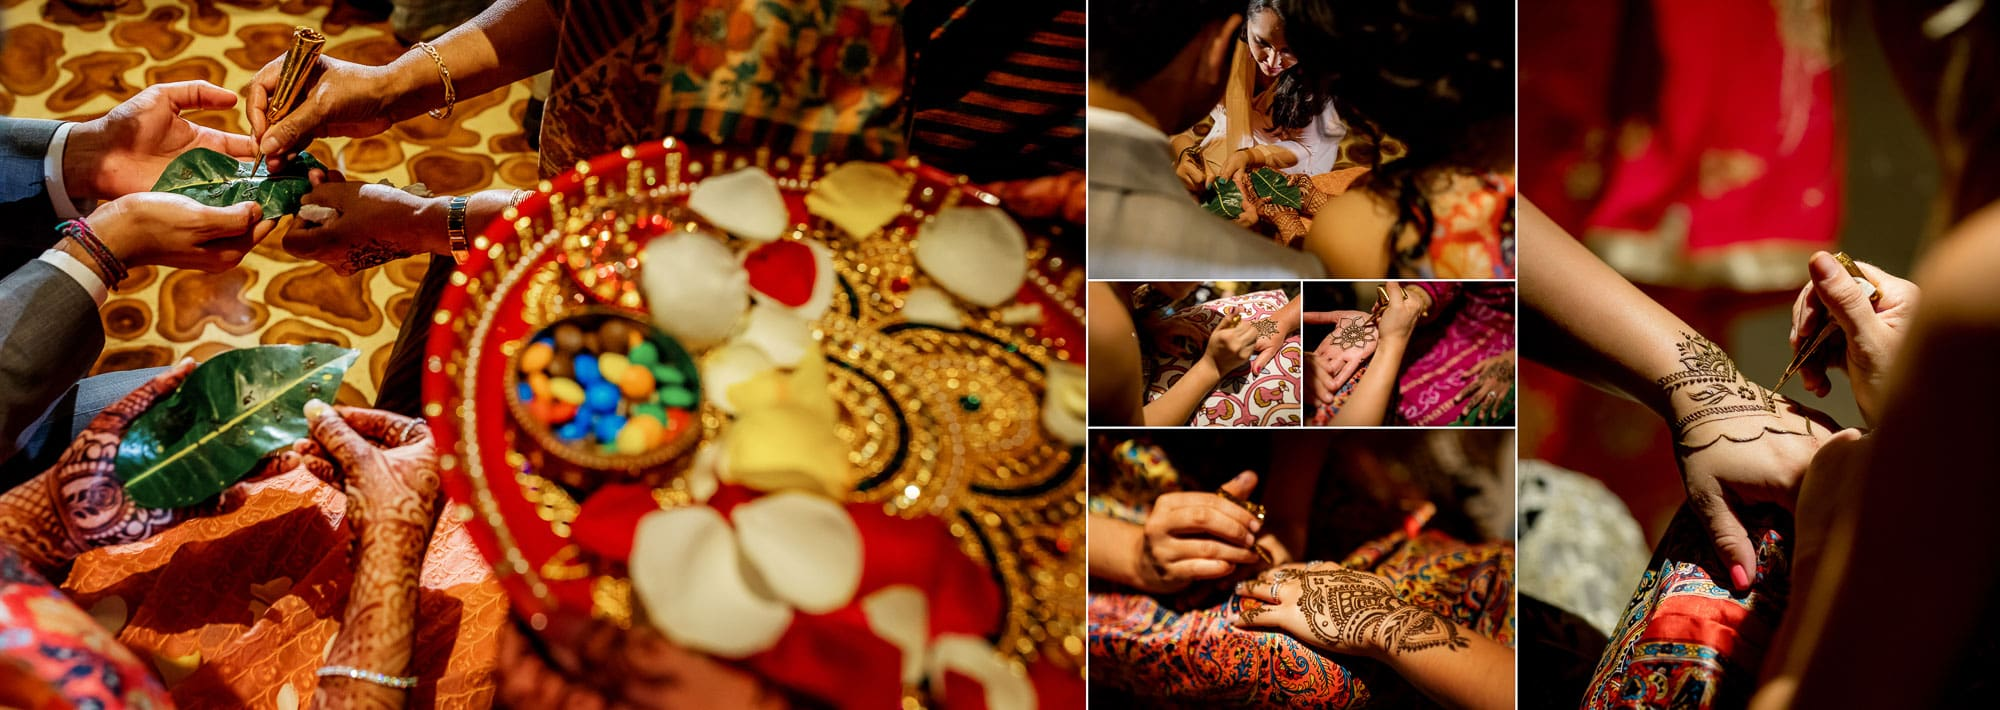 Painting the intricate henna designs